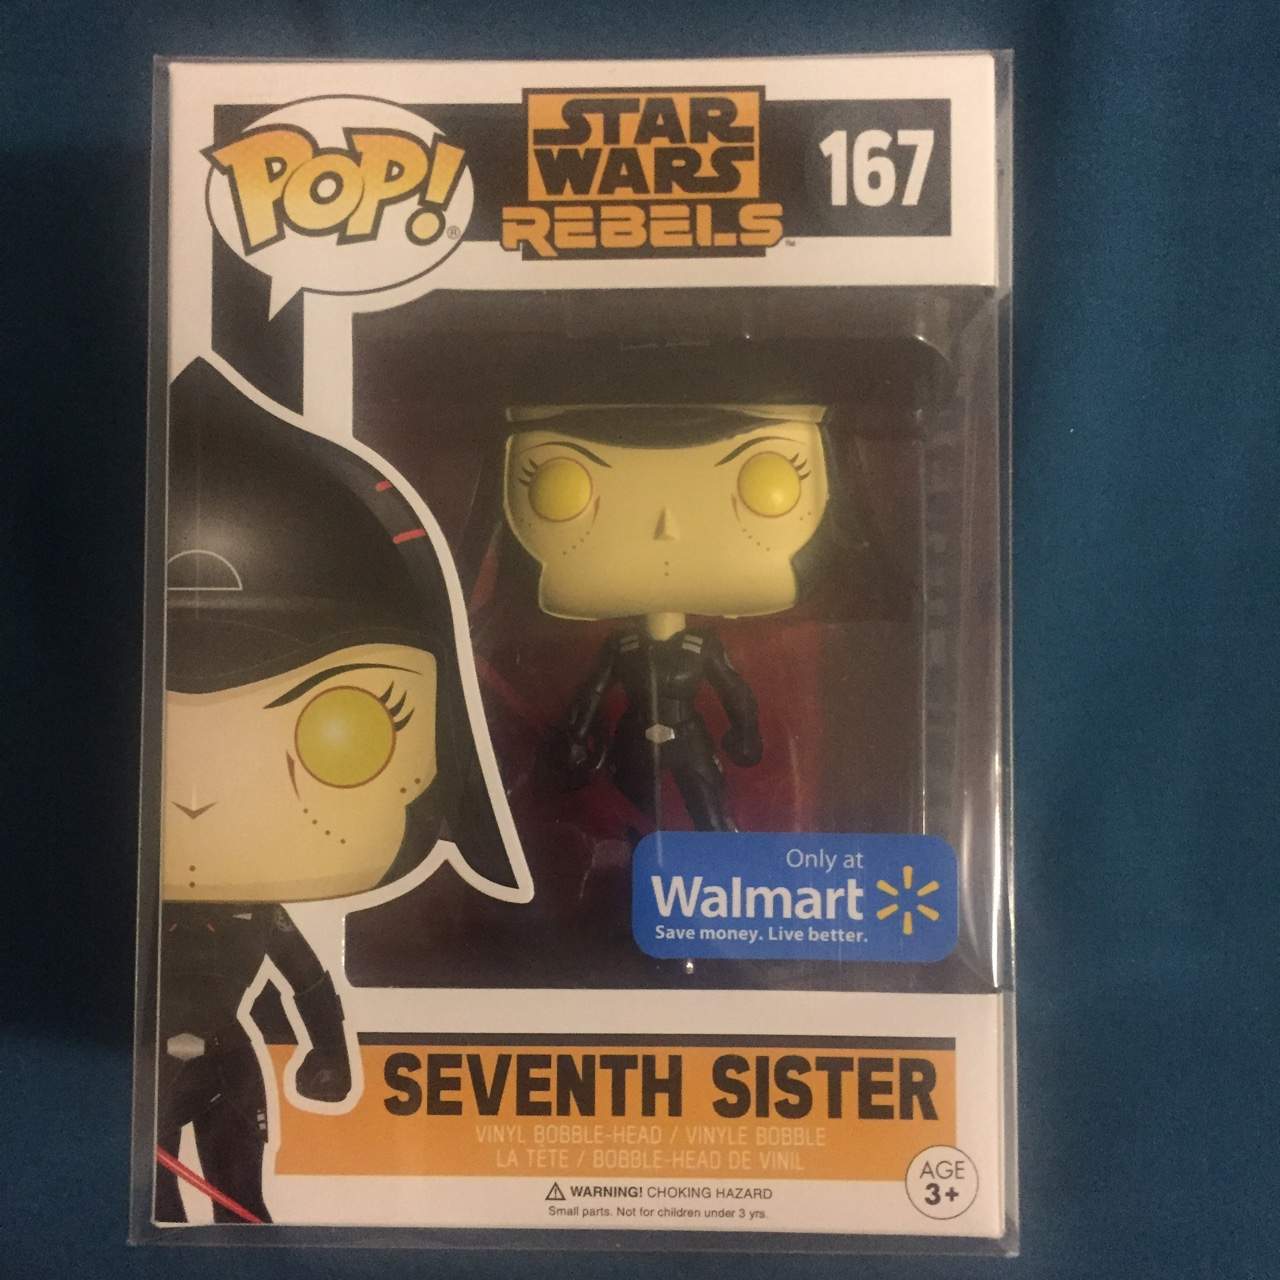 Star Wars Rebels 'Seventh Sister' Funko Pop Walmart    - Depop